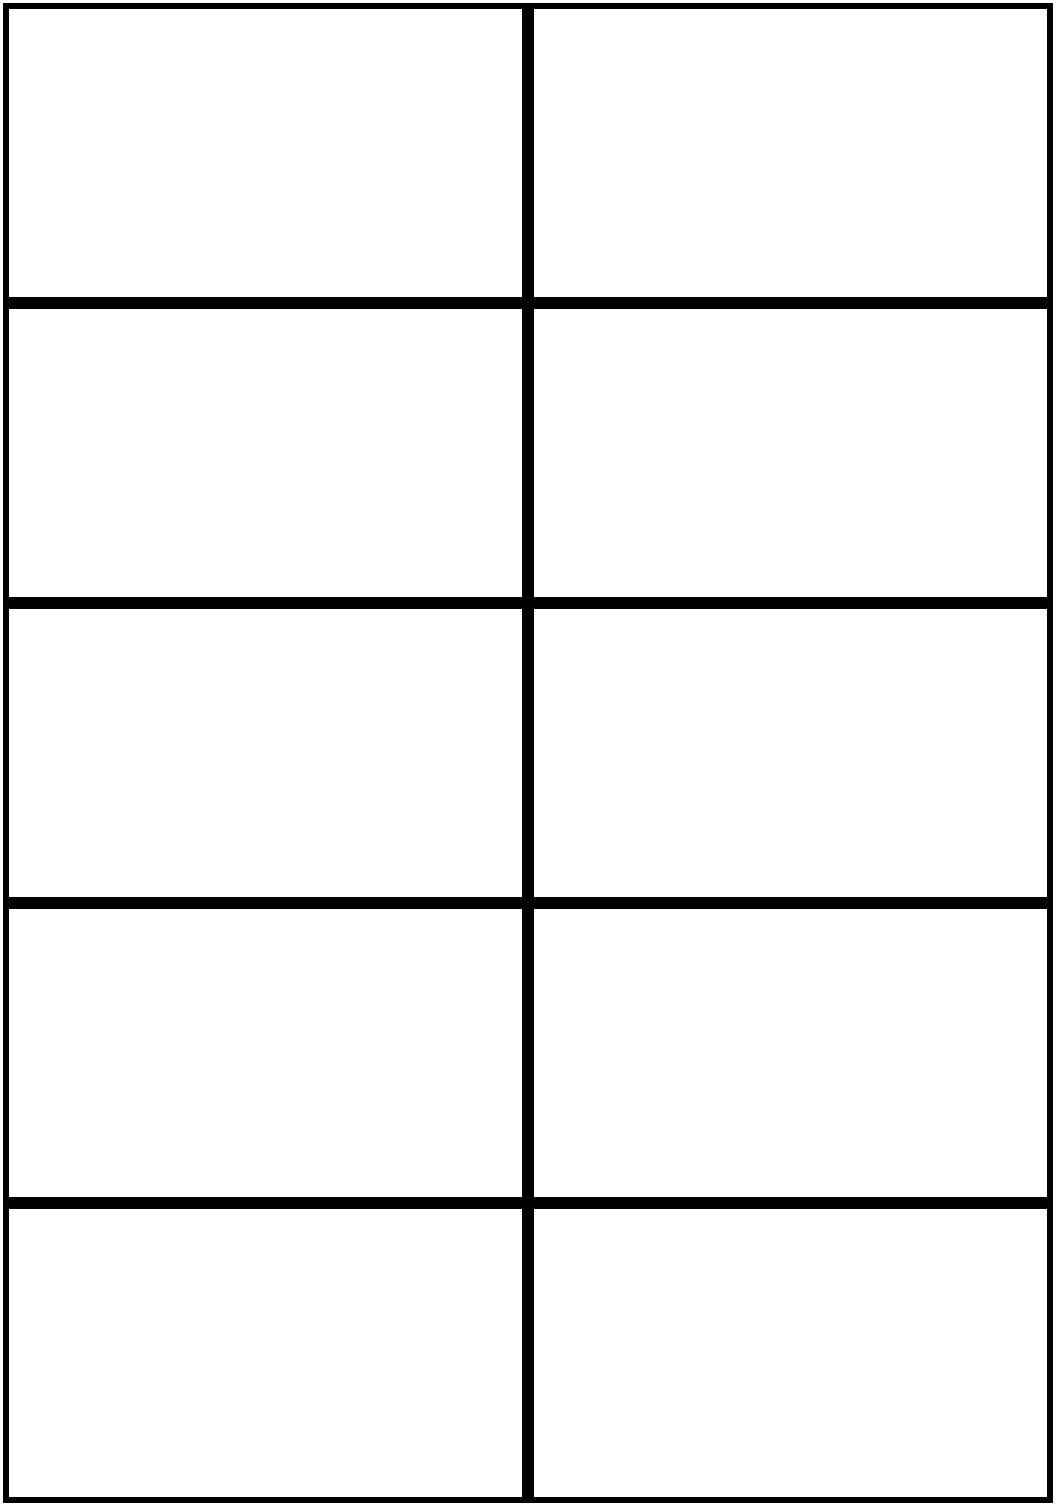 Image Result For Flashcards Template Word | Worksheets | Printable - Free Printable Business Templates